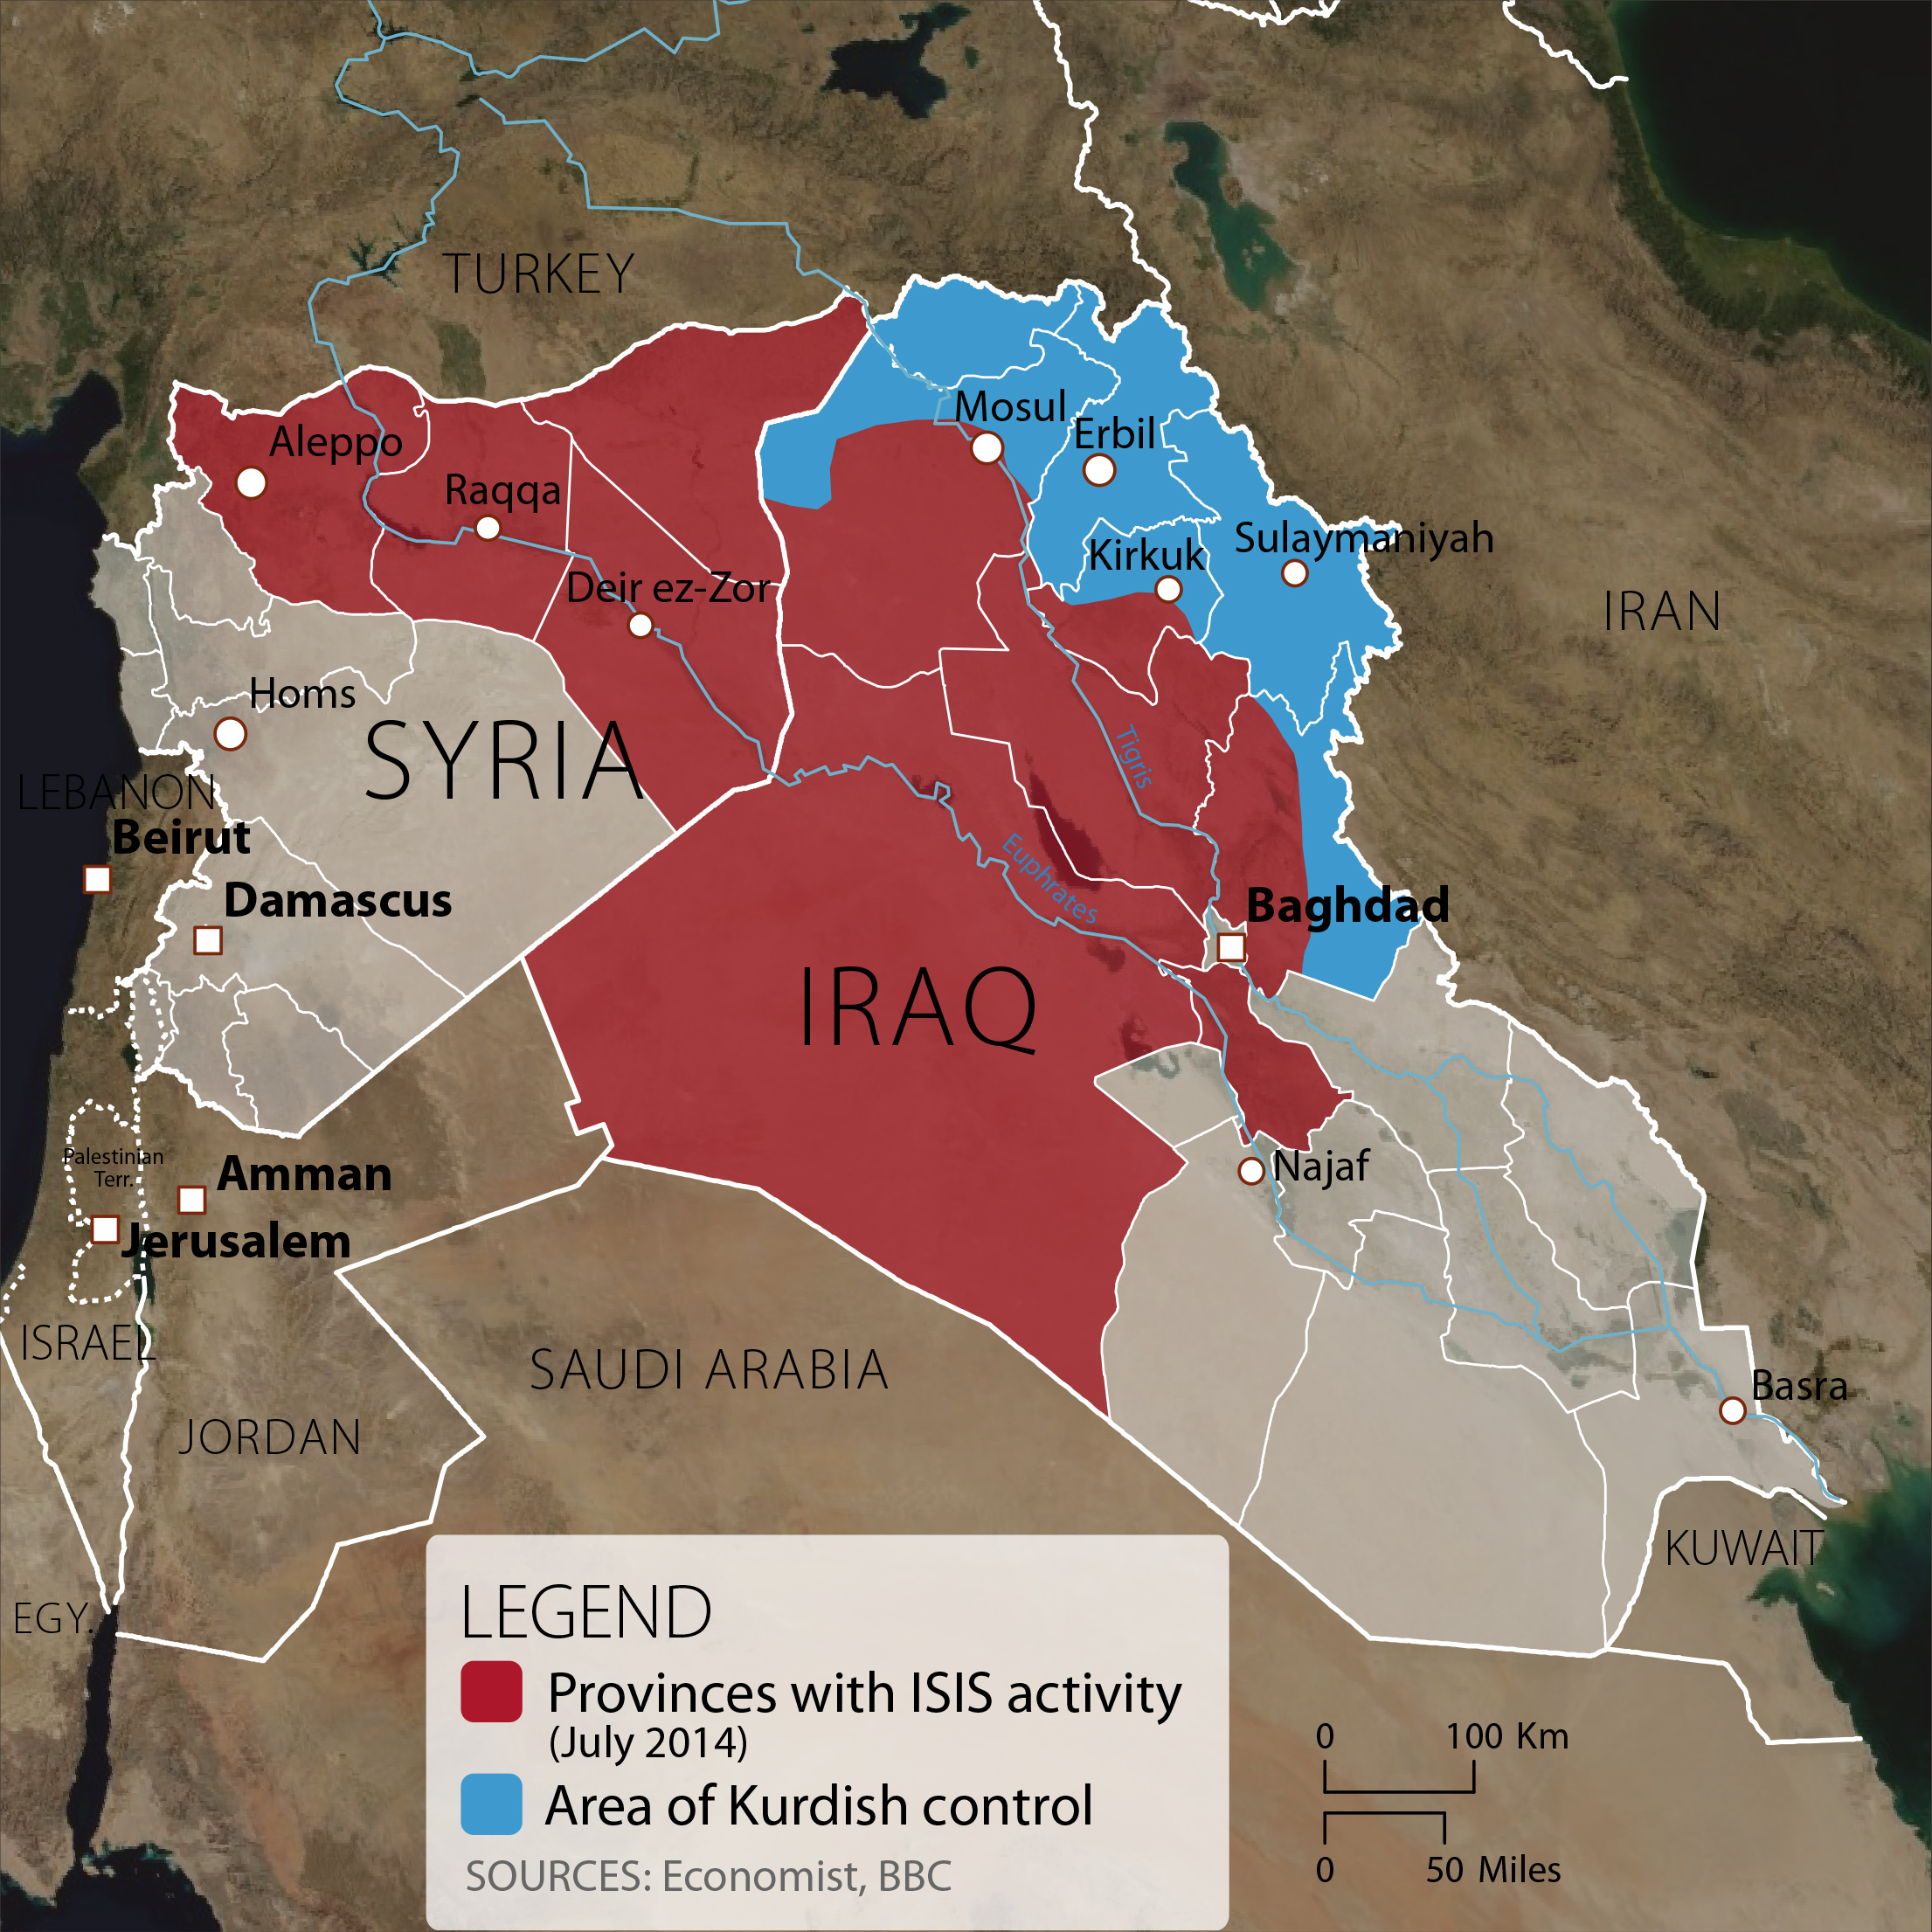 ISIS Activity In Syria and Iraq